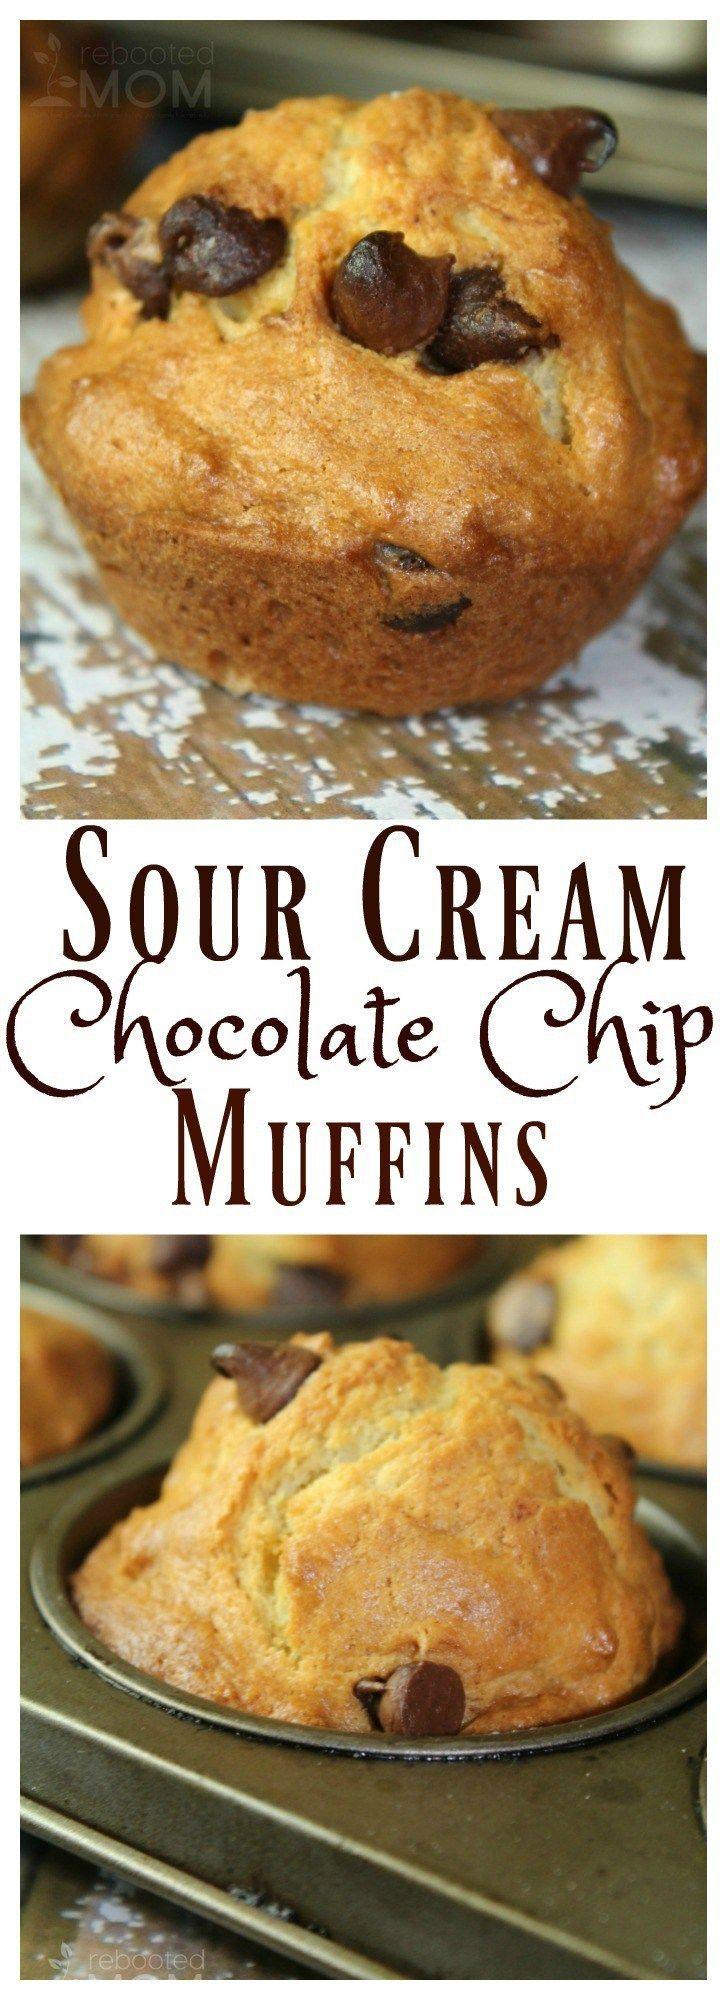 Sour Cream Chocolate Chip Muffins